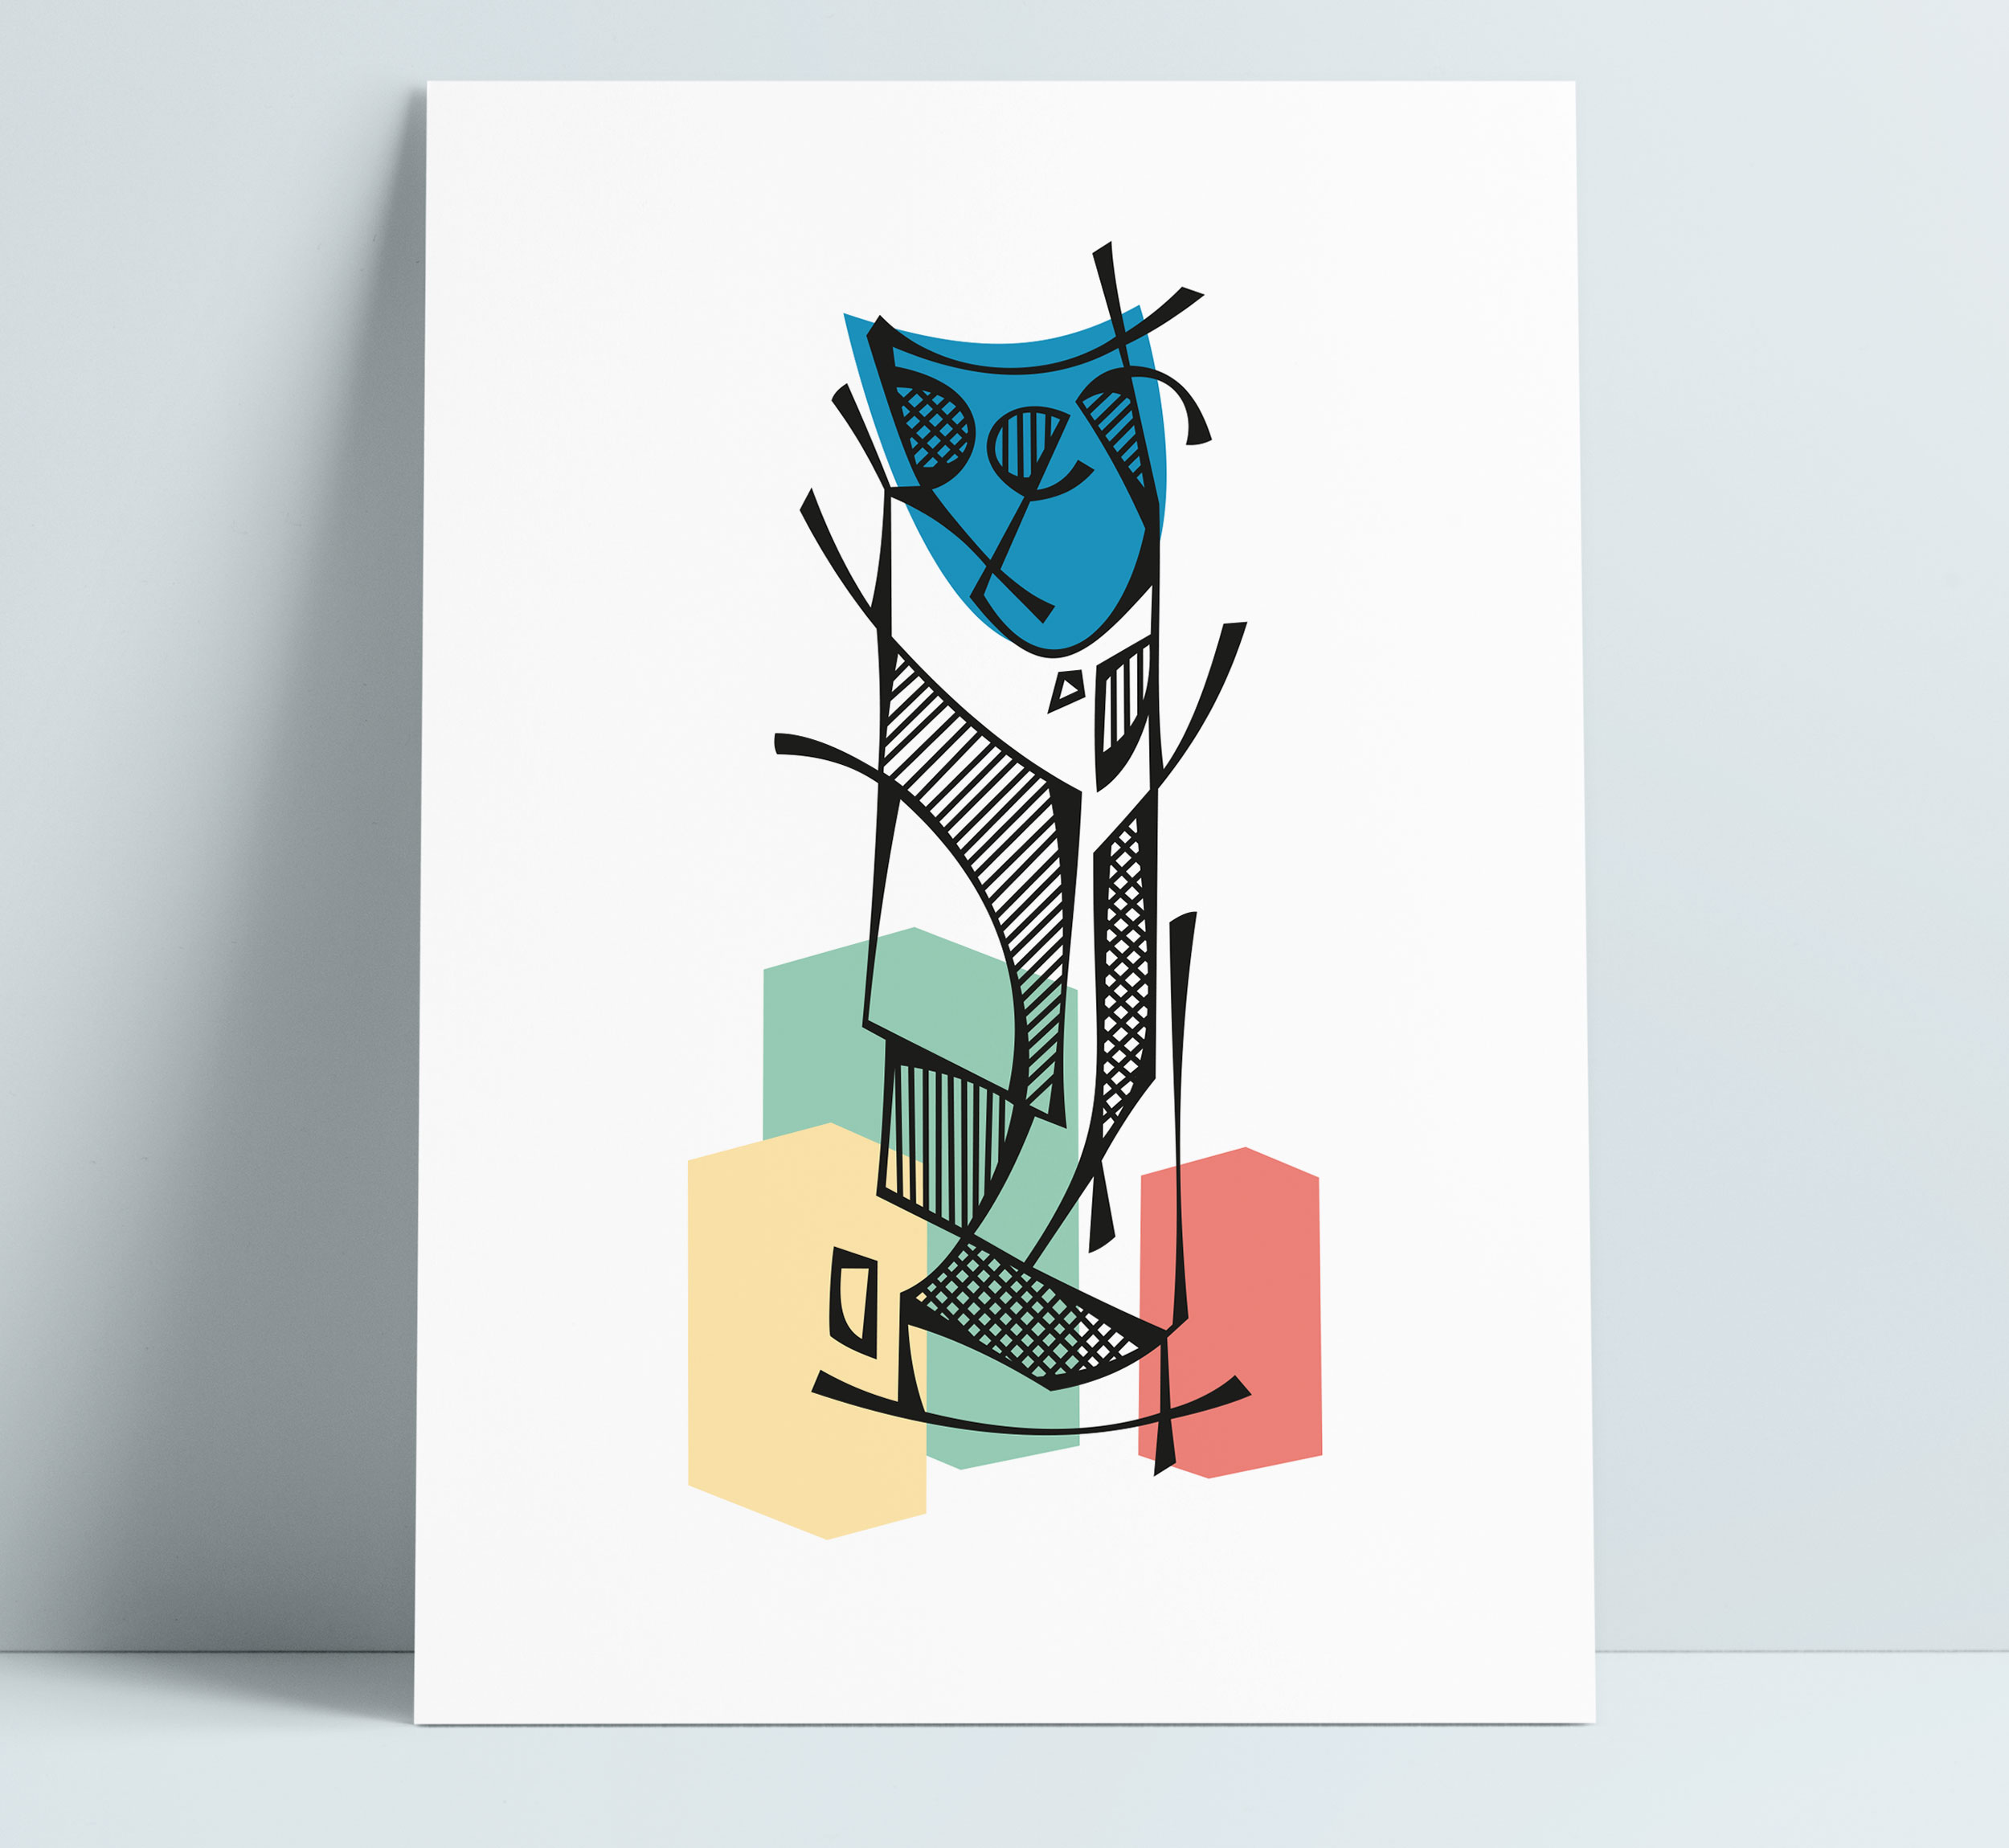 London Strata SE1 (The Razor) Illustration Art Wall Decoration